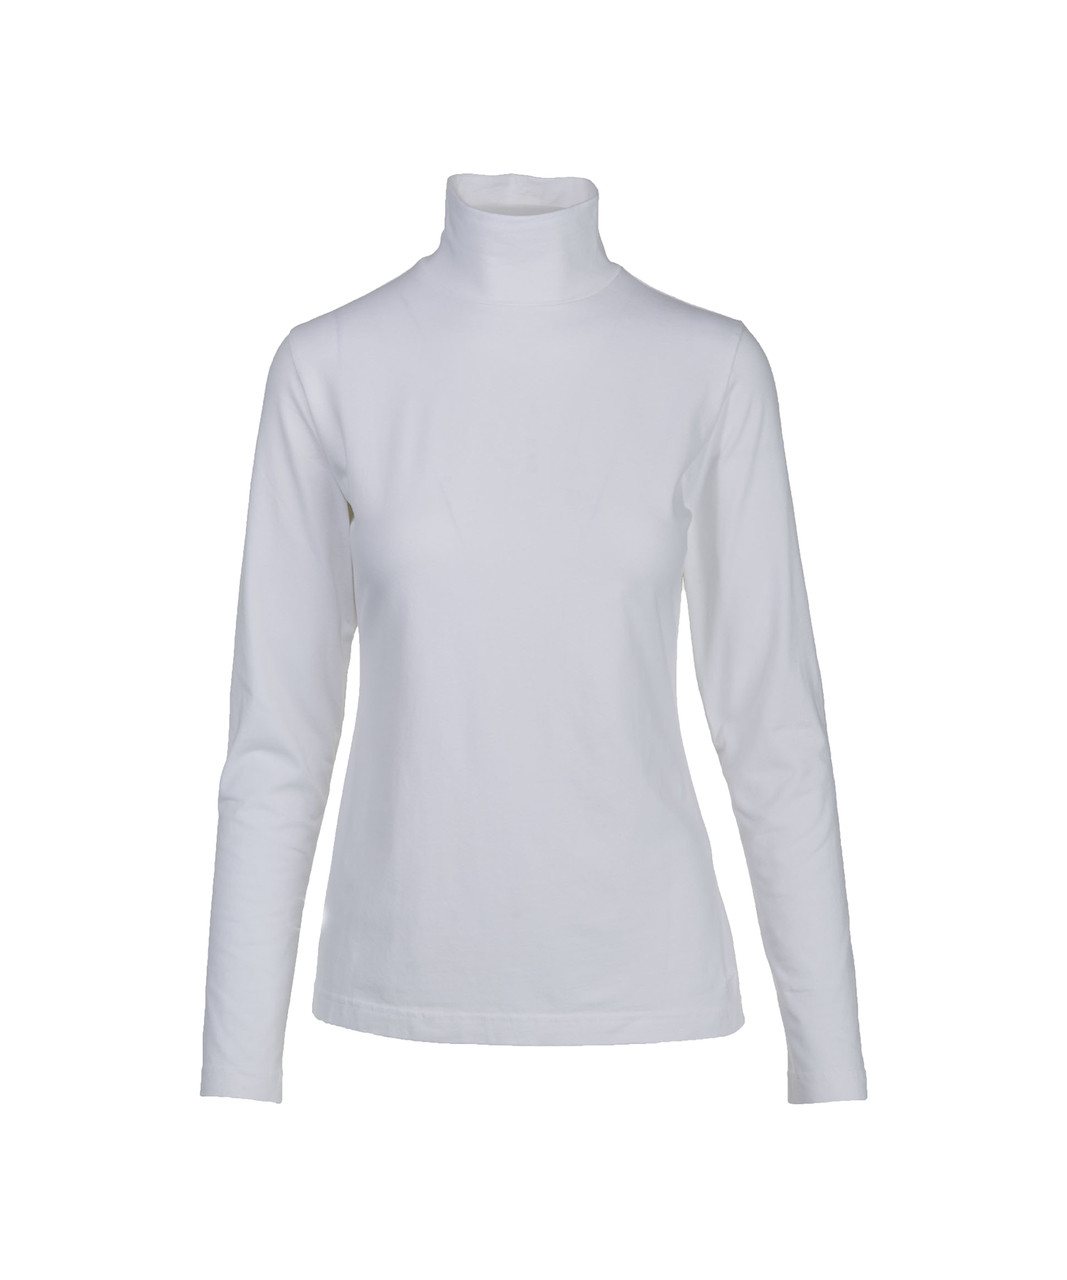 6333fb4d6e9 Women s Laureldale High Mock Turtleneck. 7004 model WHITE